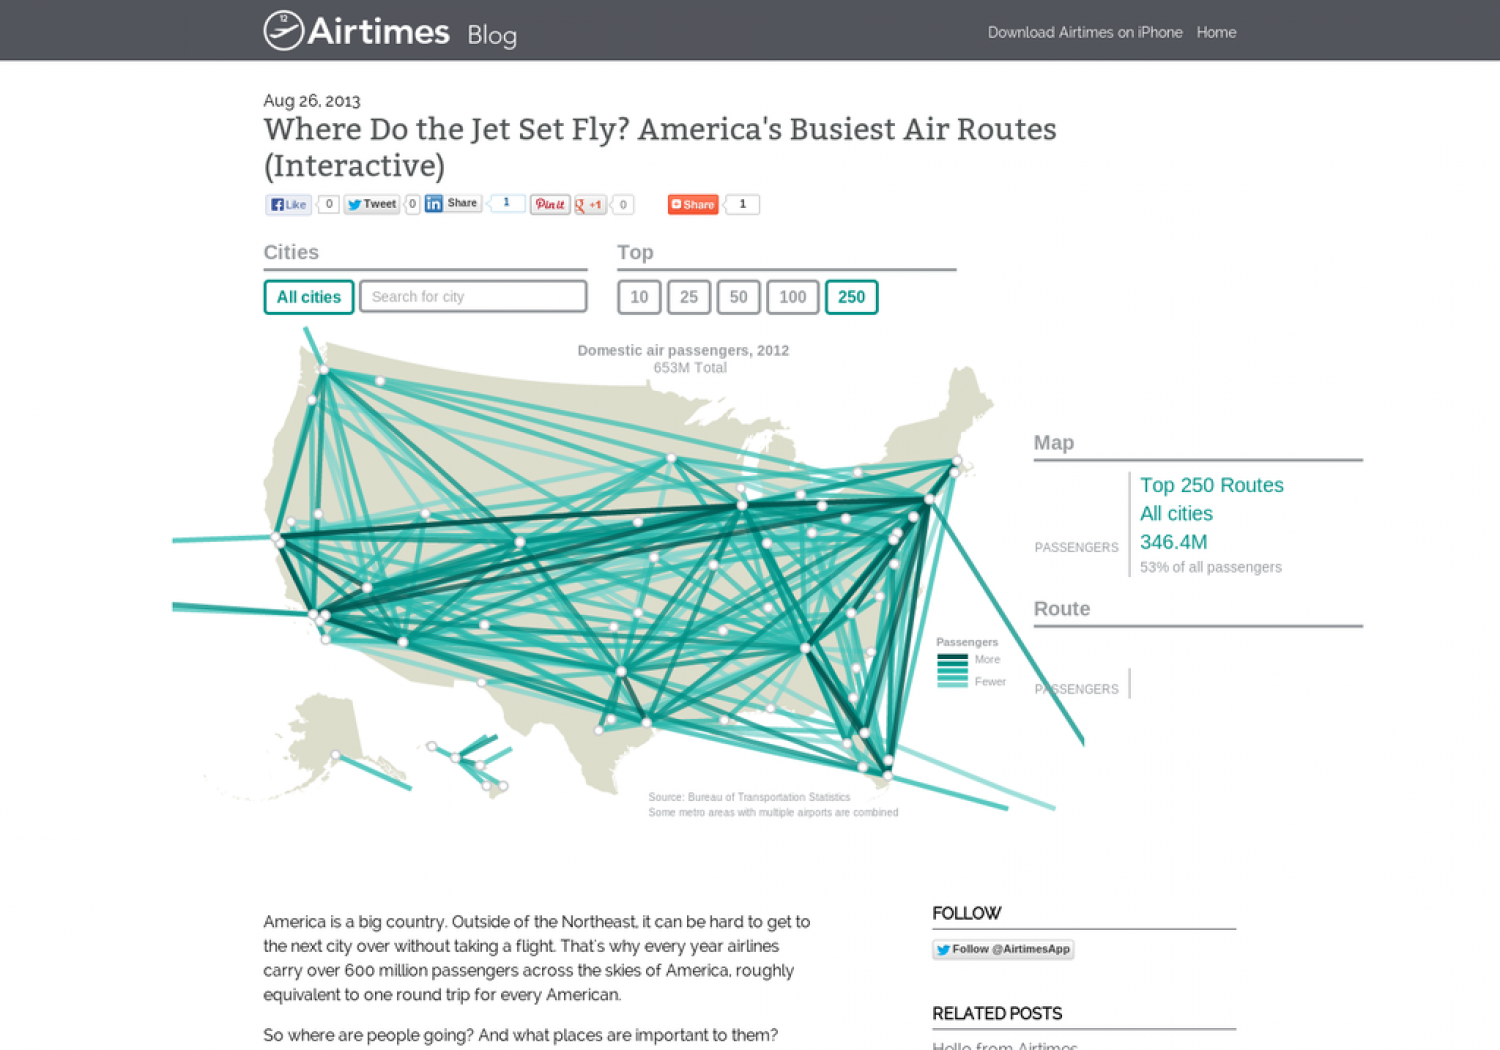 Where Do the Jet Set Fly? America's Busiest Air Routes  Infographic